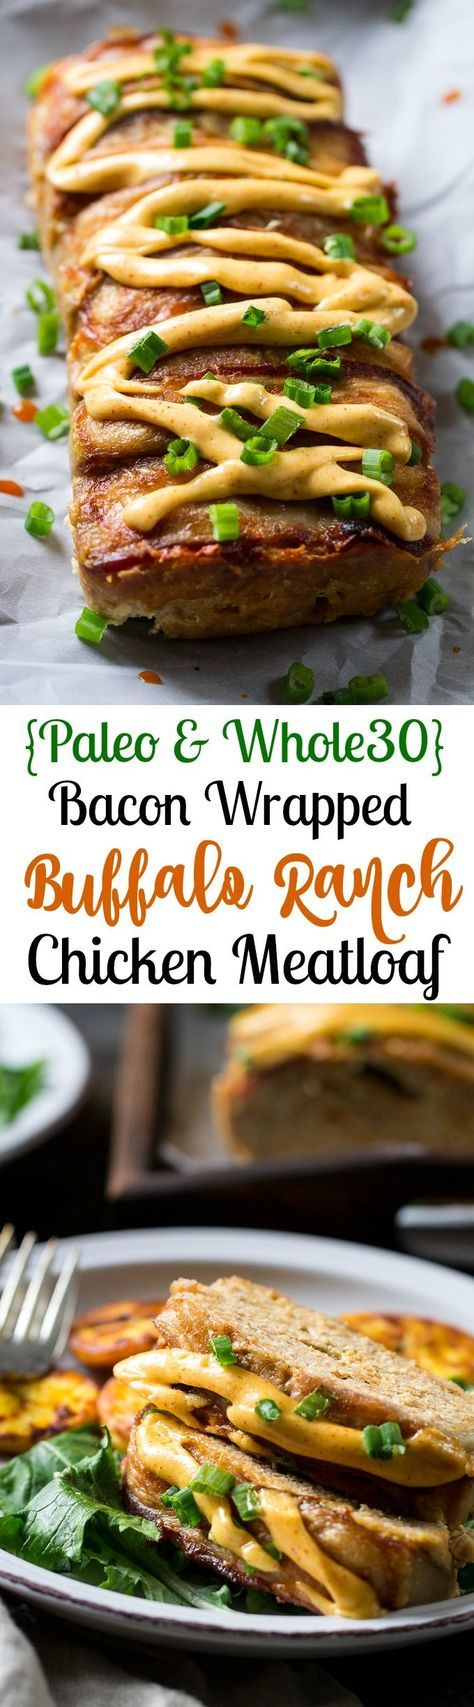 Bacon Wrapped Buffalo Ranch Chicken Meatloaf {Paleo & Whole30} this meatloaf is packed with flavor, wrapped in bacon and topped with a spicy buffalo ranch sauce!